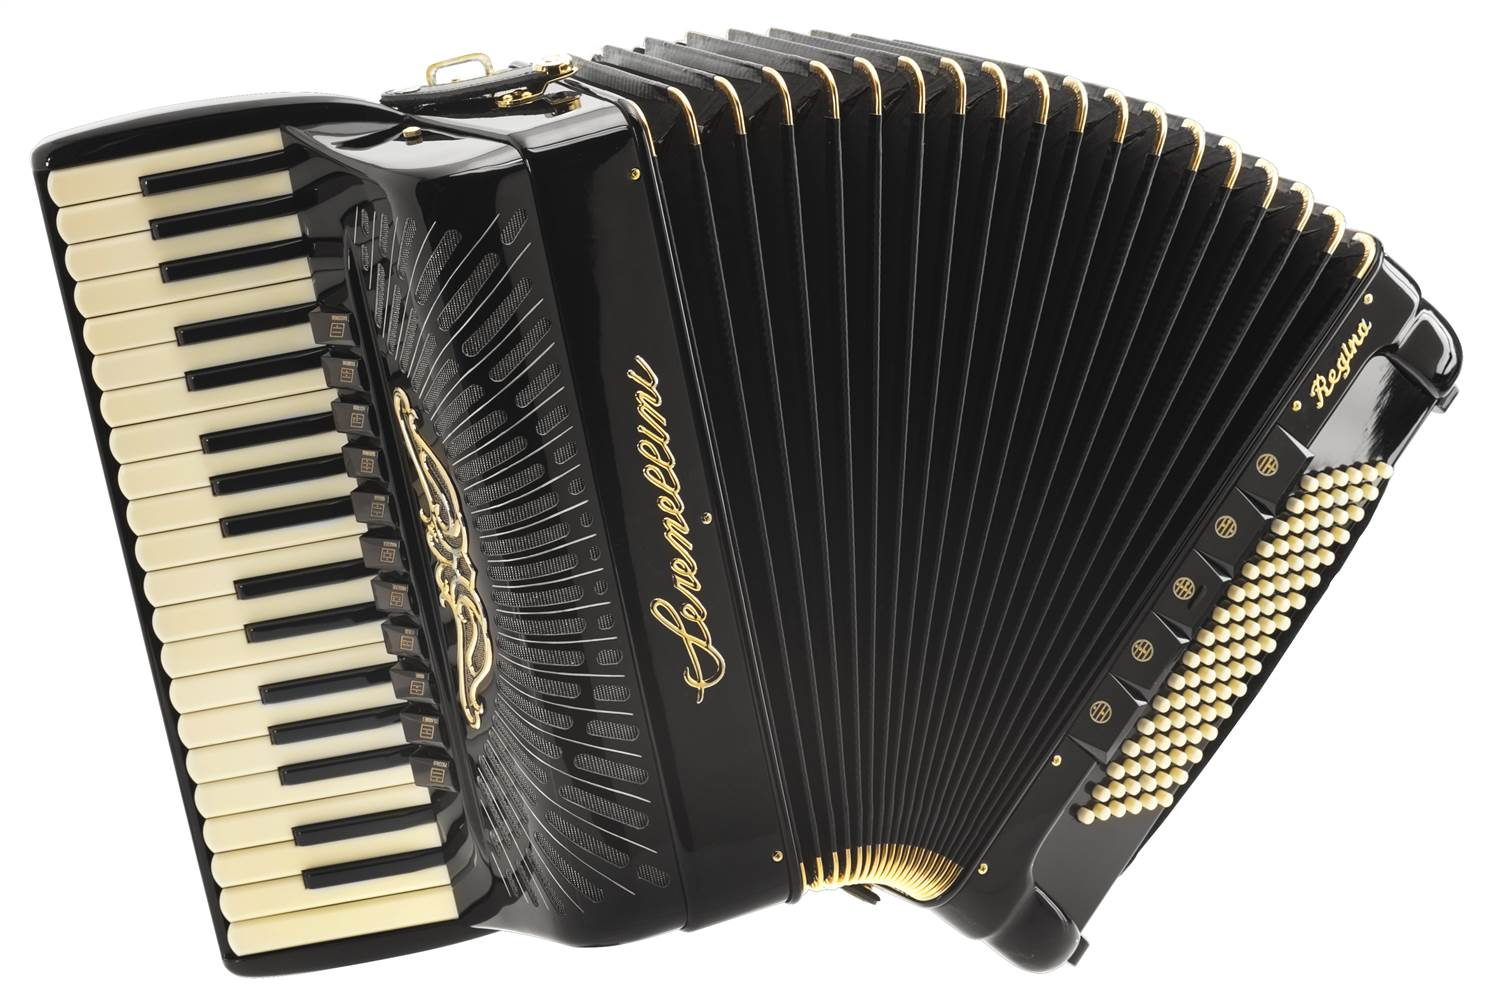 Serenellini Cassotto Regina Gold 2+2 piano accordion